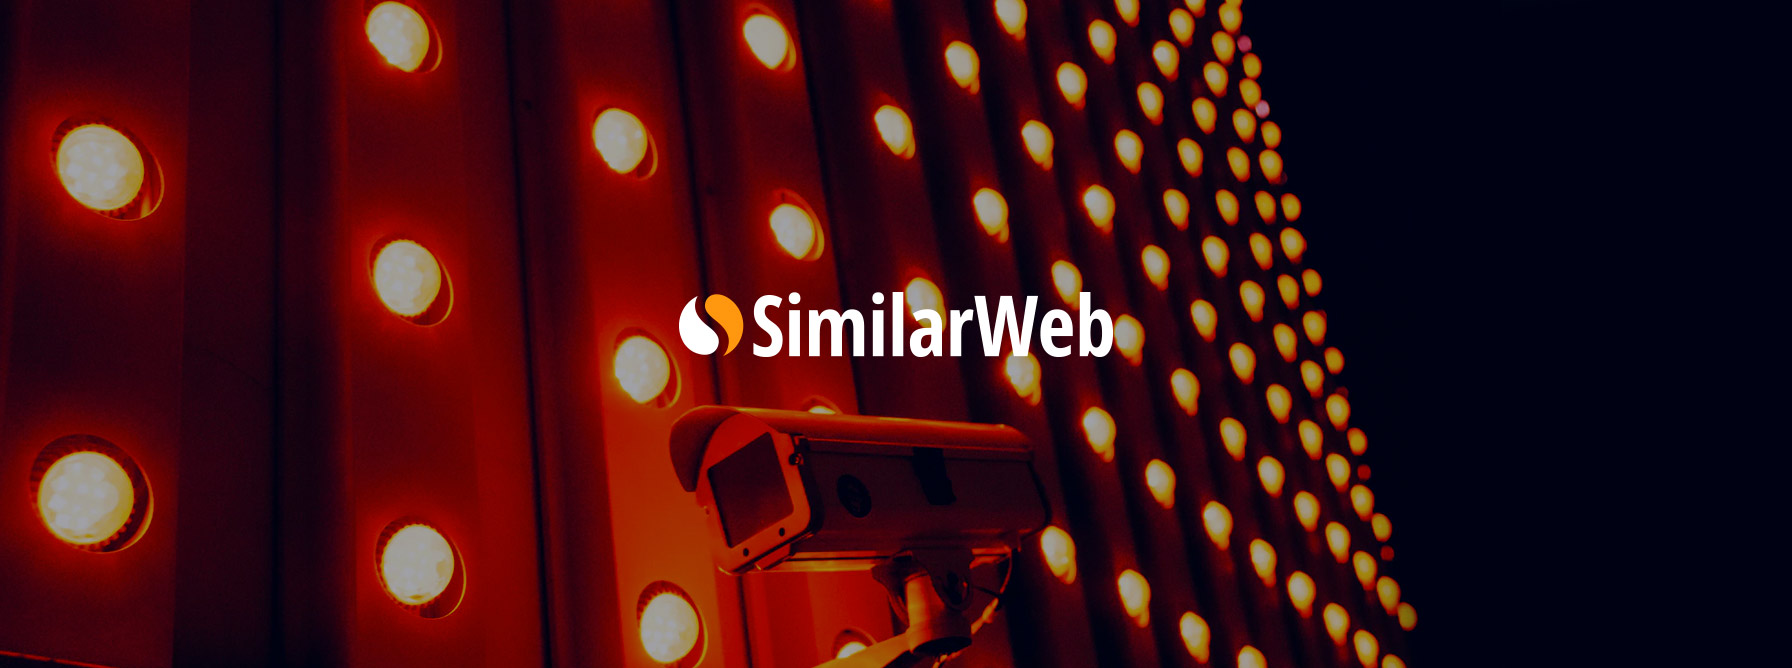 SimilarWeb: Spy on your competitors' web data header